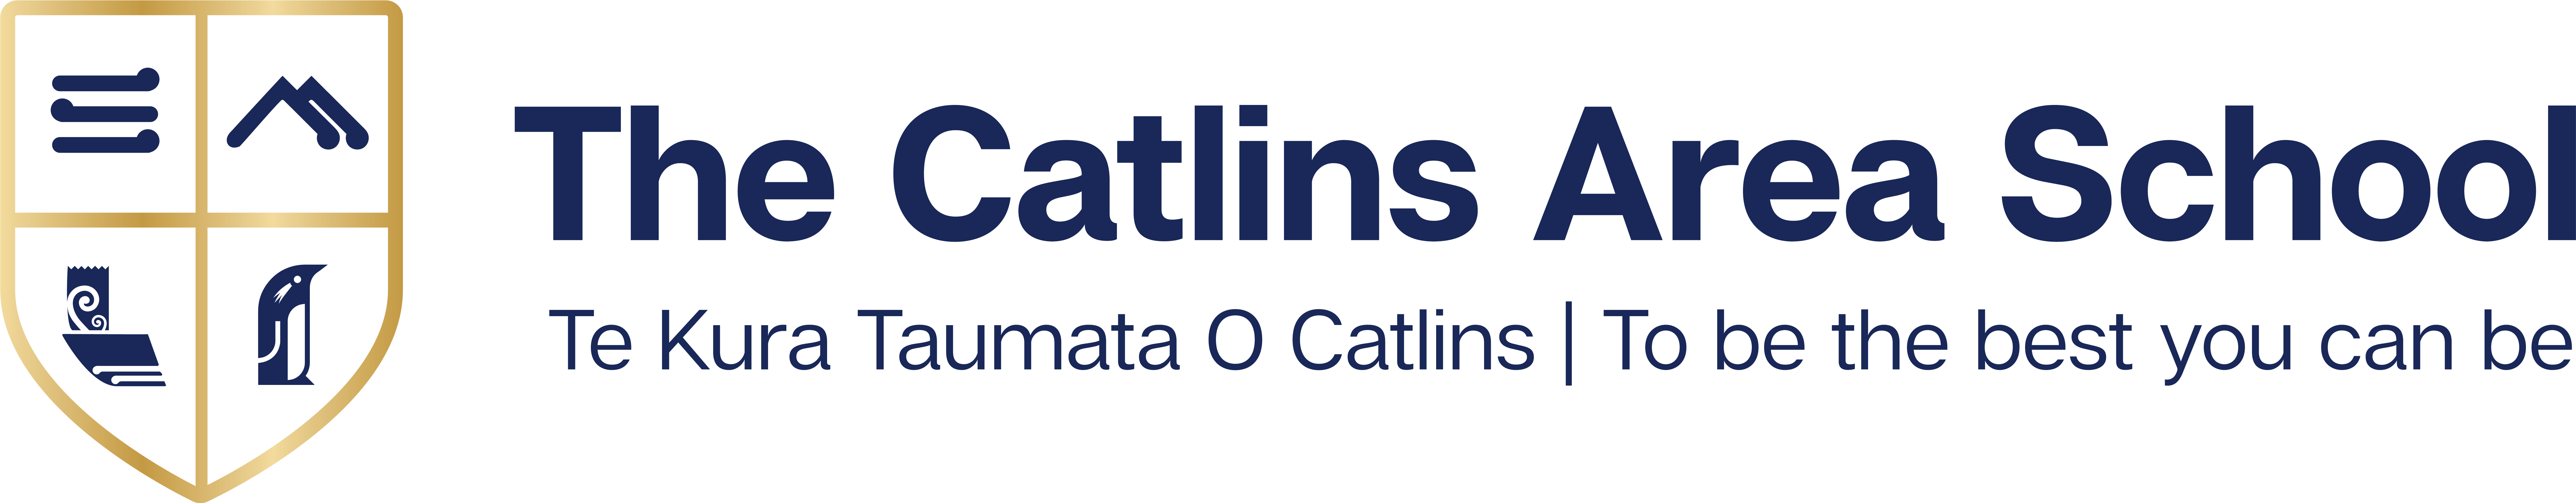 The Catlins Area School